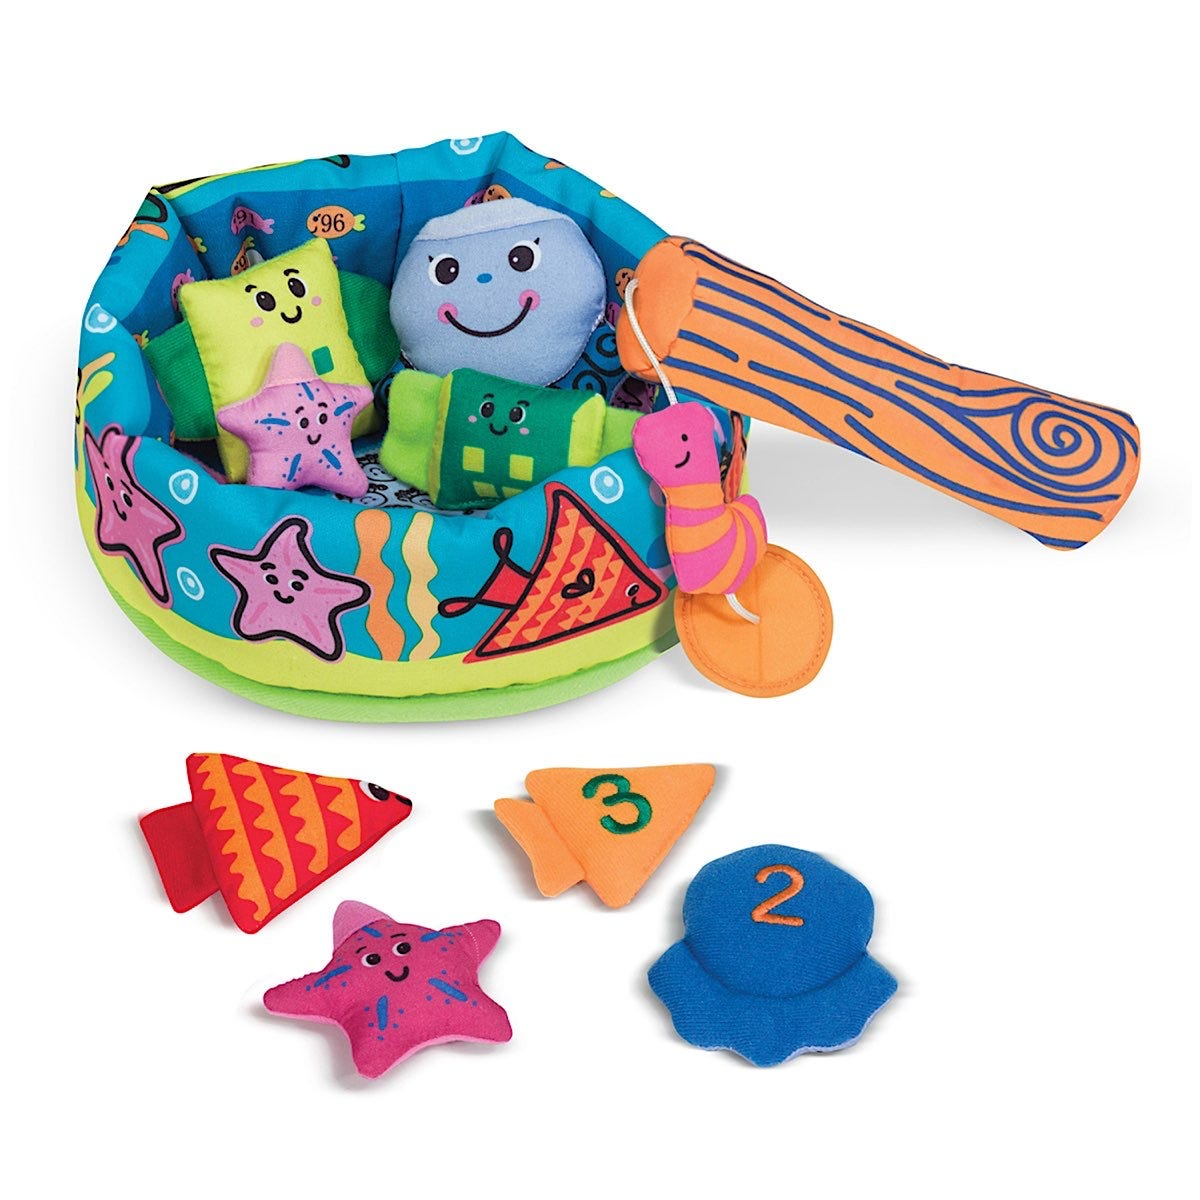 Fish and Count Game